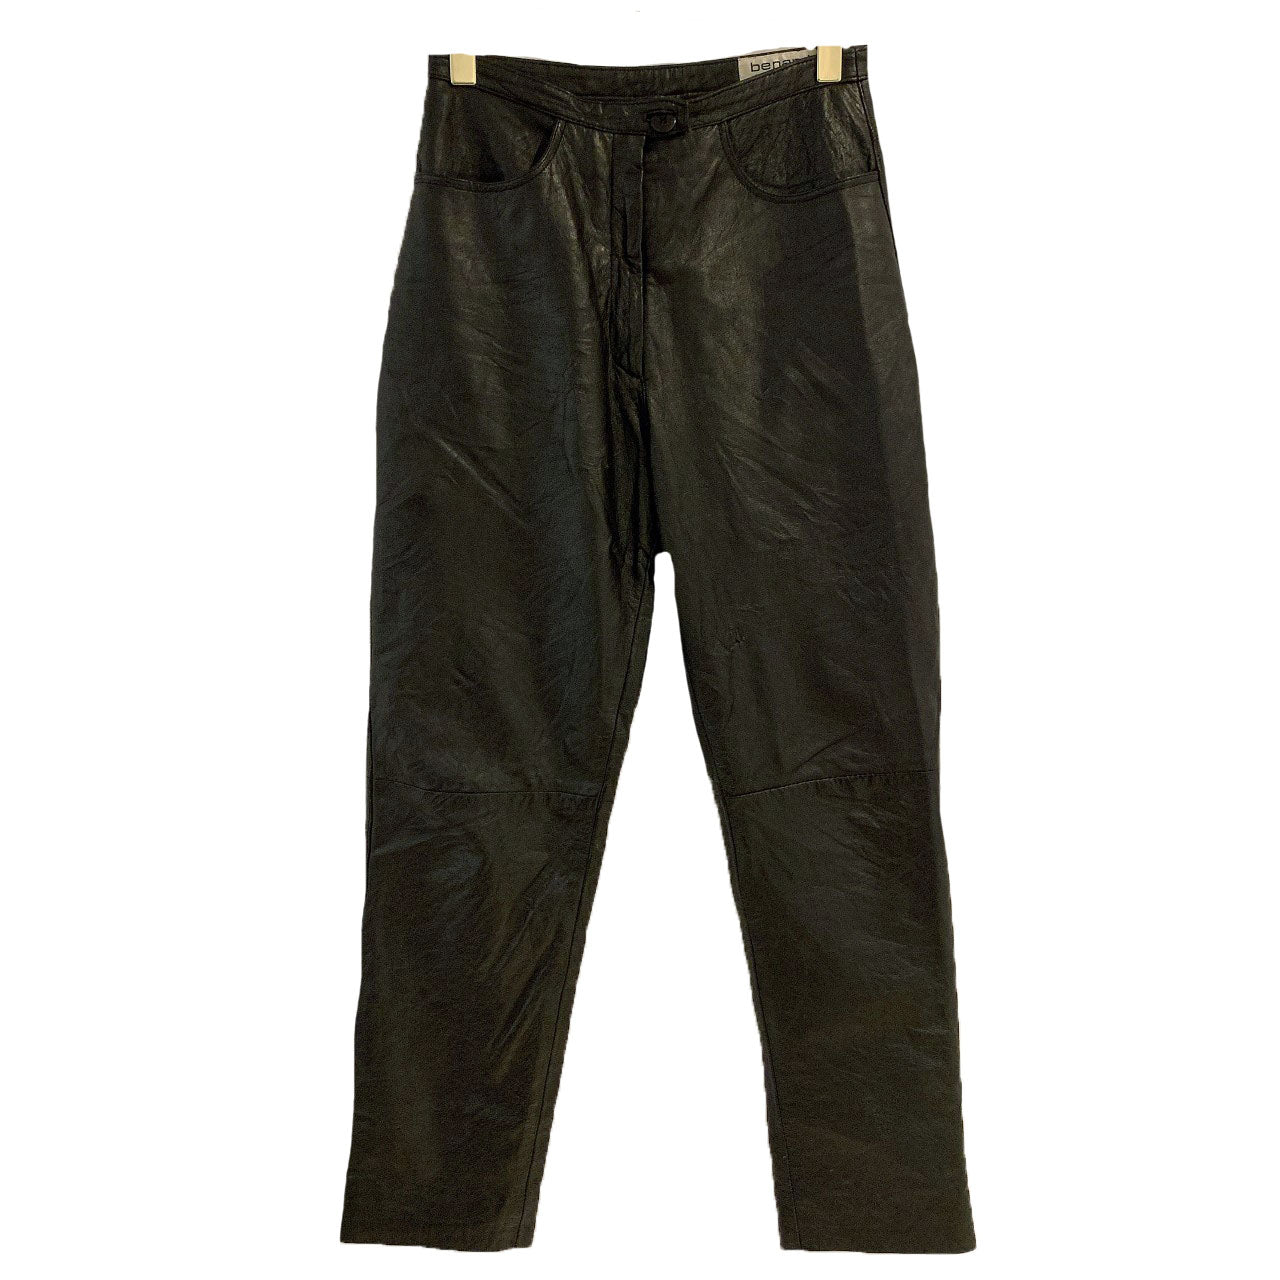 Butter Leather pants